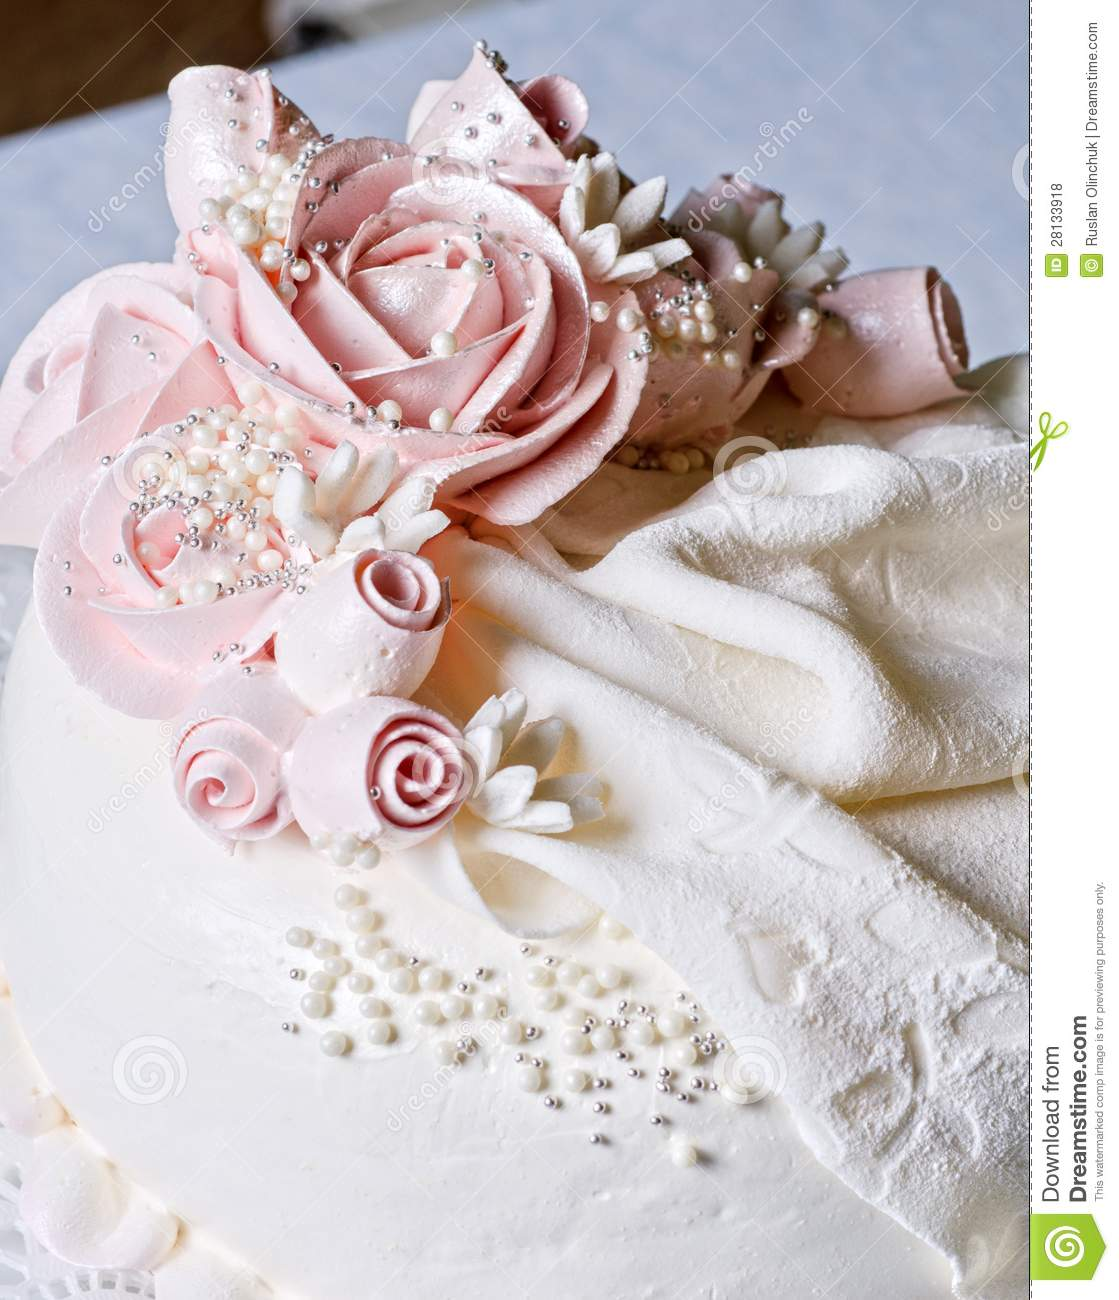 8 Free Stock Photos Of Wedding Cakes Images